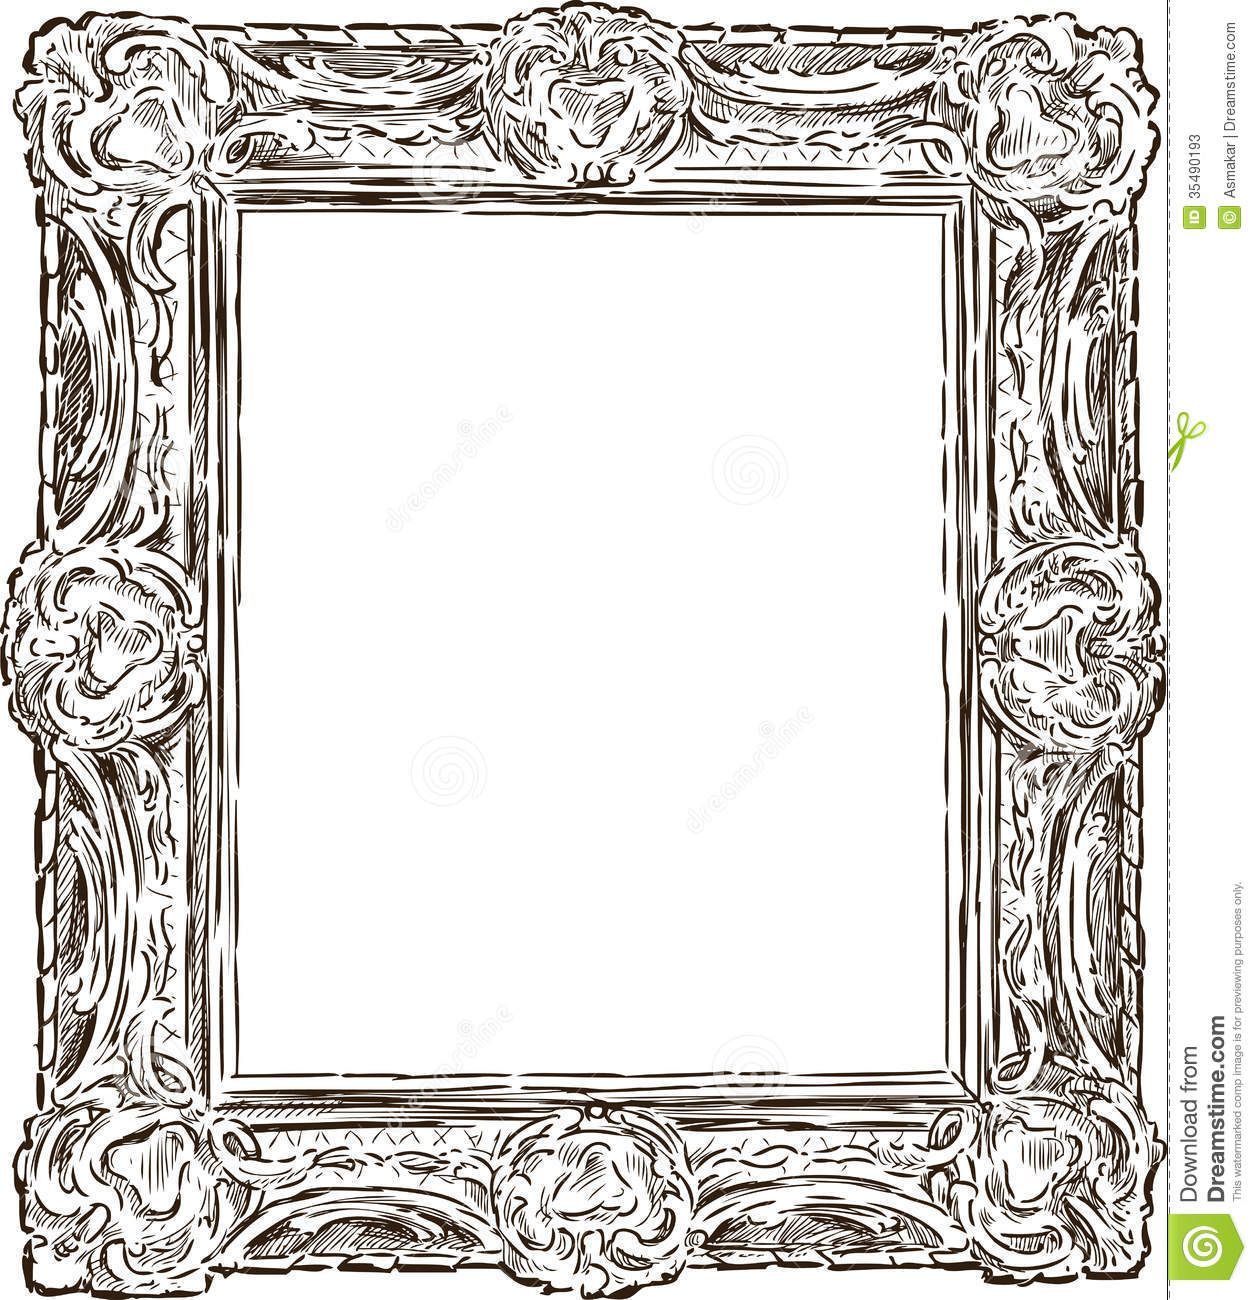 ornate frame drawing - Google Search | Chronicles of ...